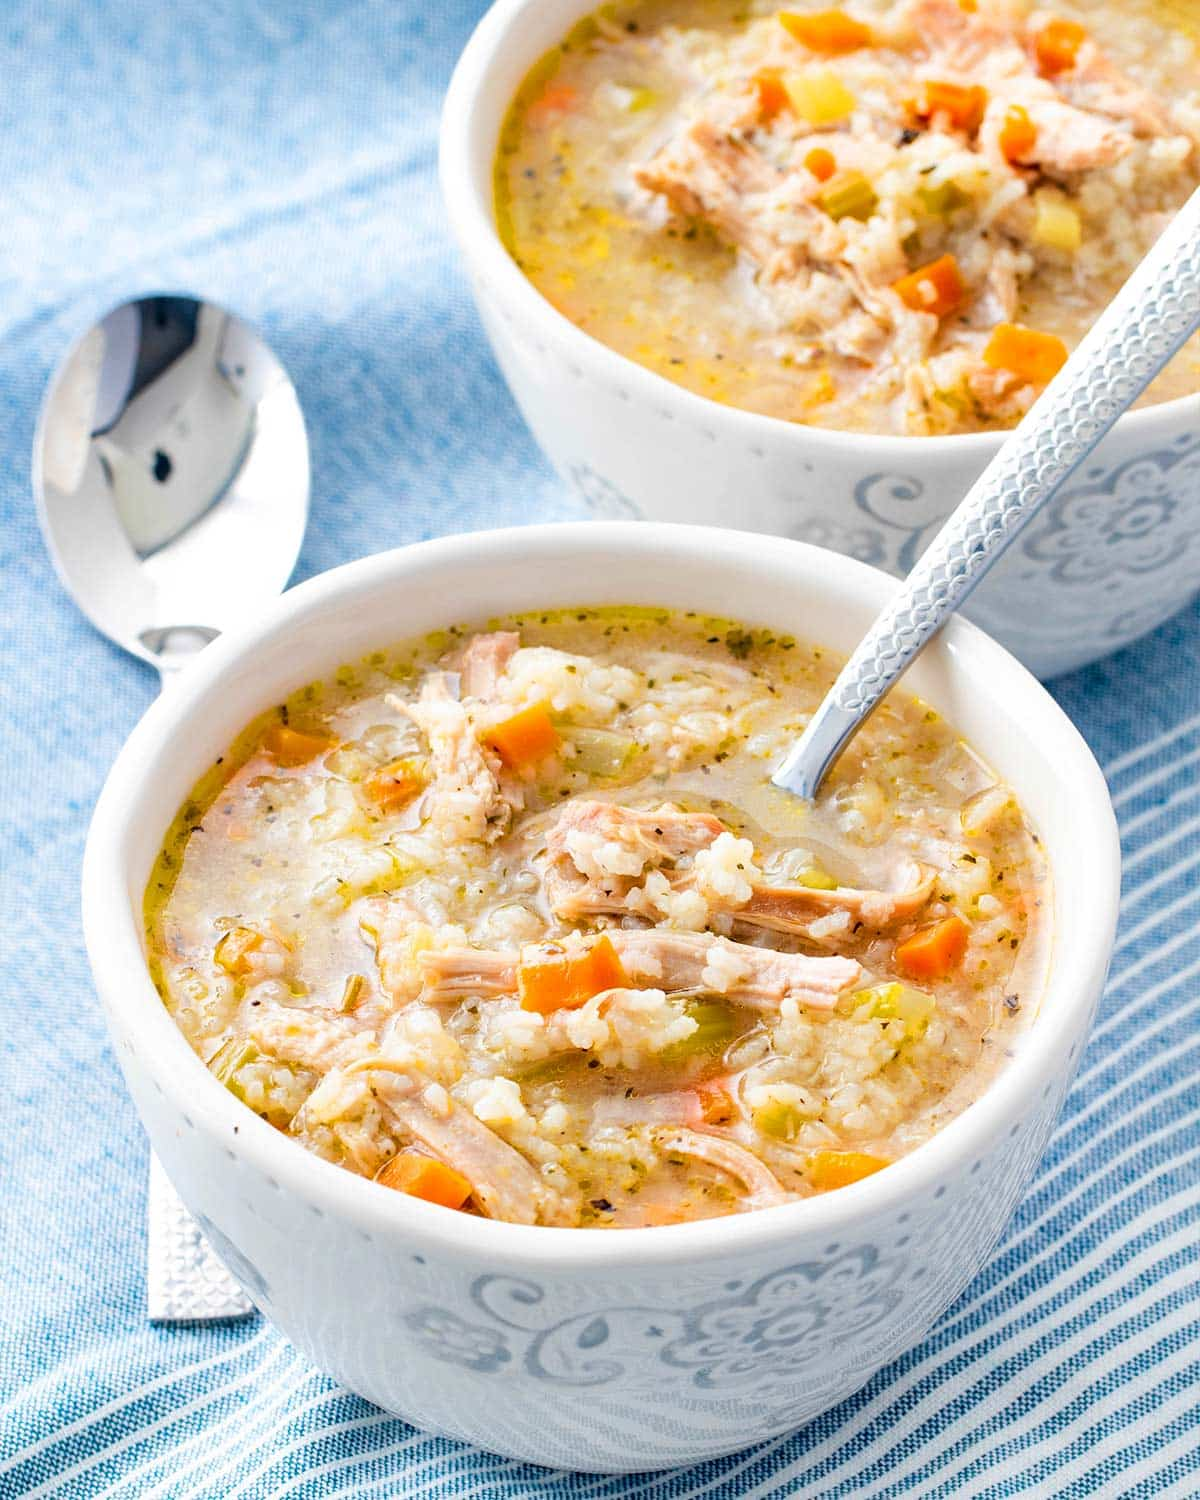 a bowl of freshly made chicken and rice soup with a spoon in it.